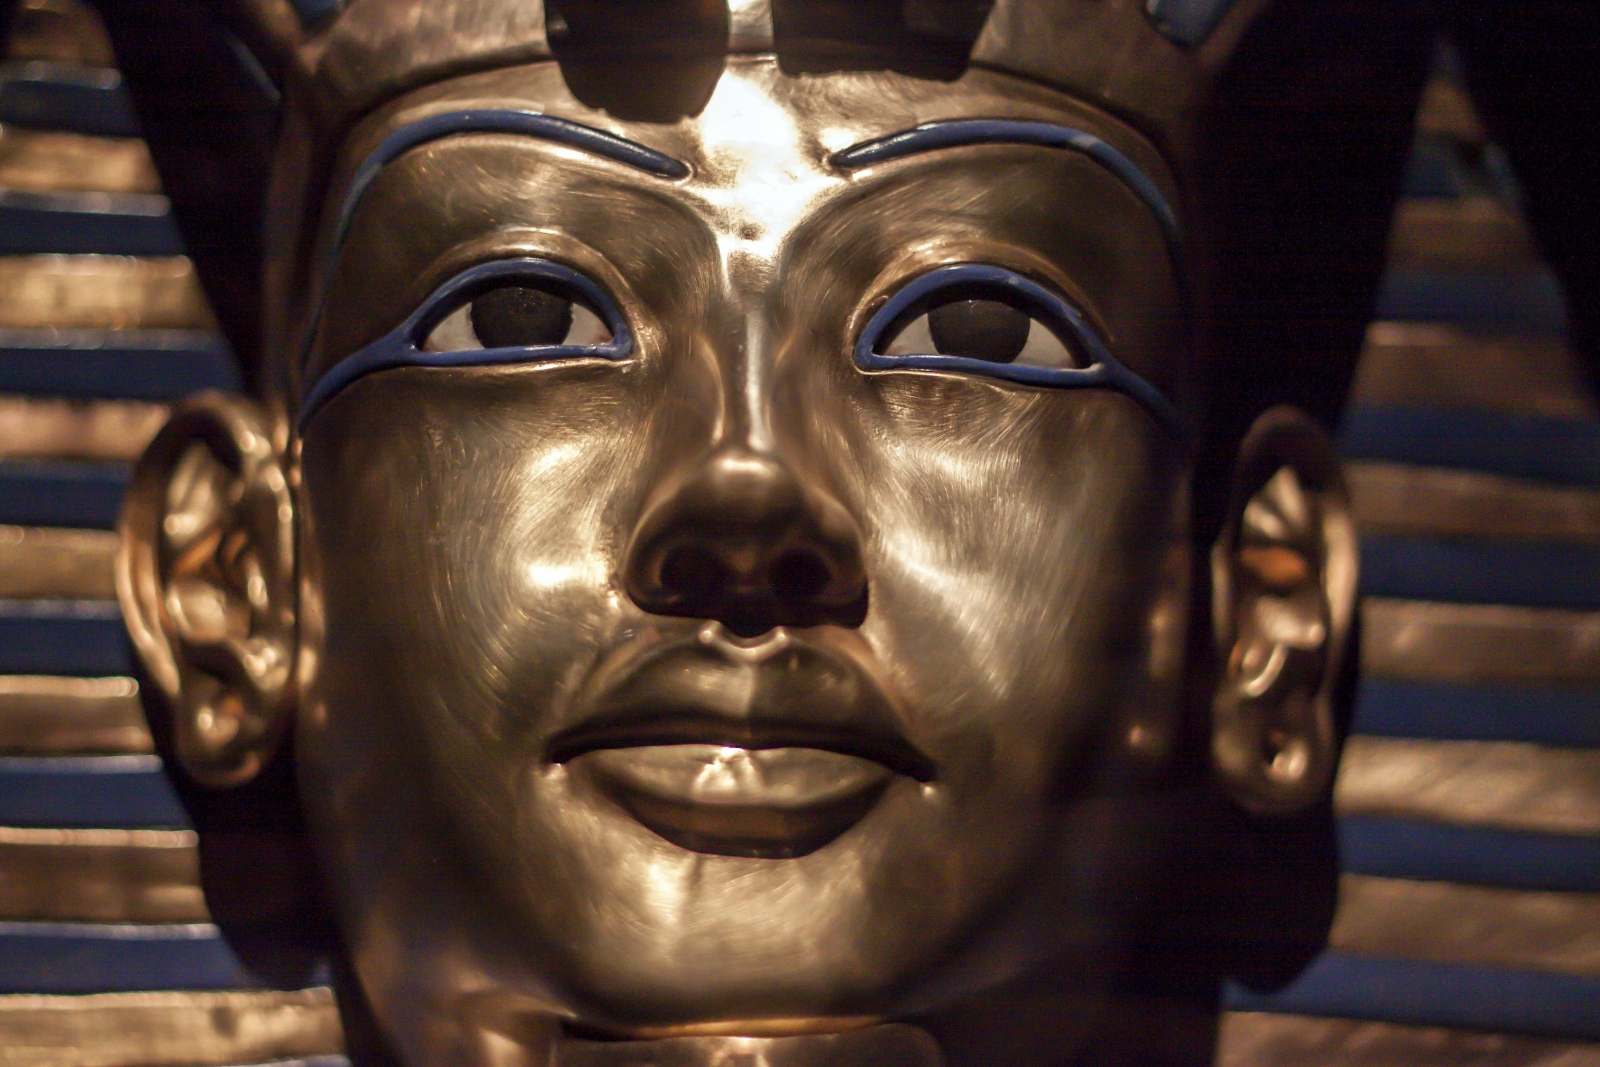 The gold mask of King Tutankhamun, who died at 19 years of age.